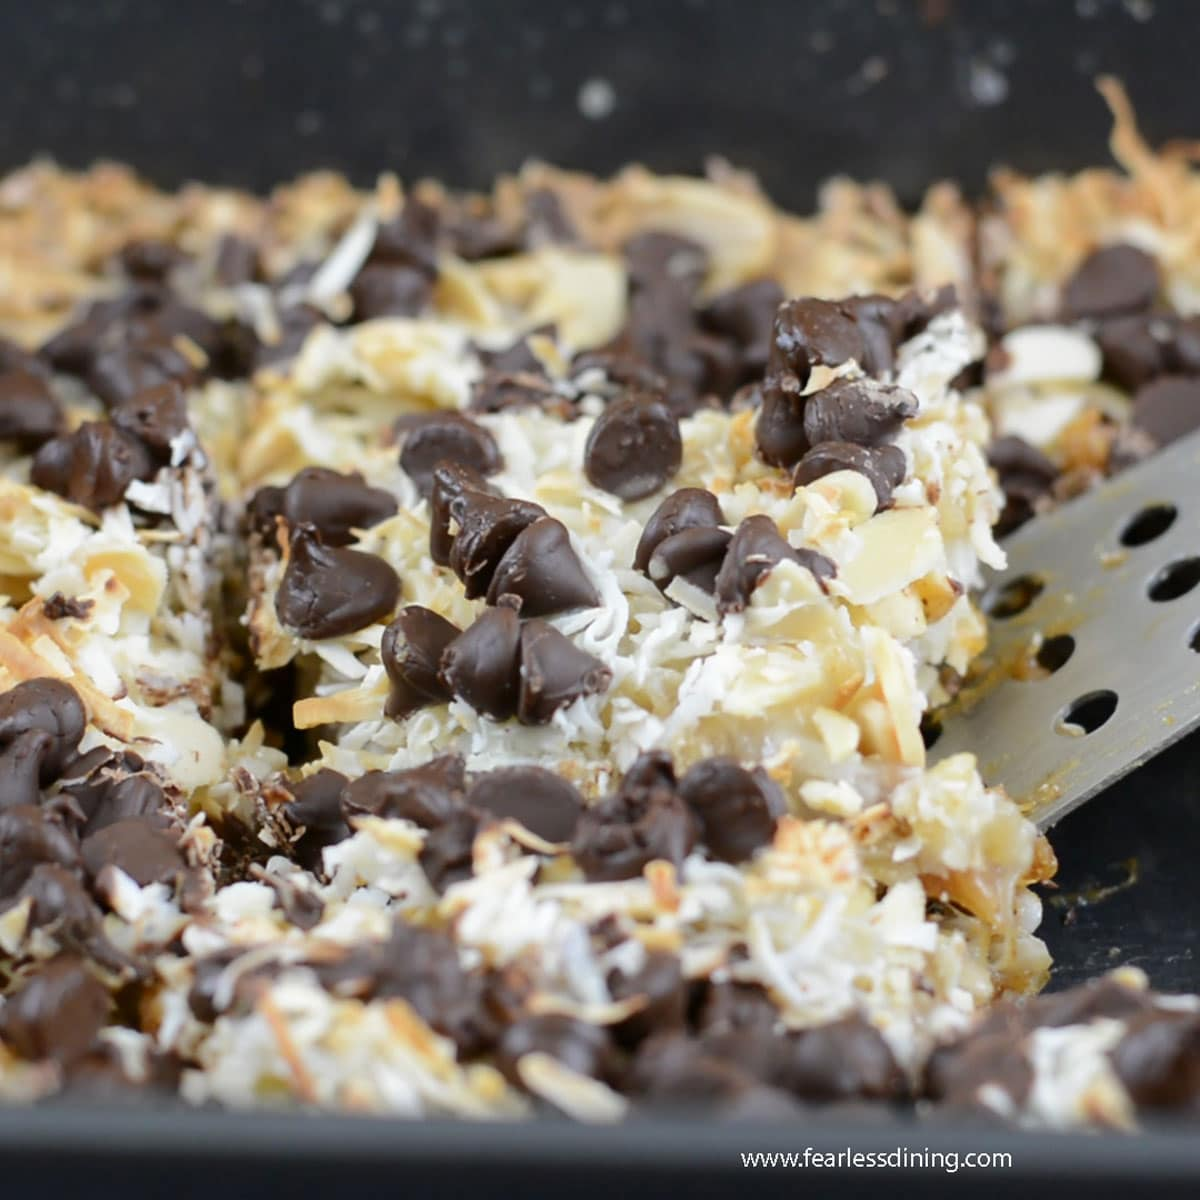 scooping out a slice of gingerbread 7 layer bars